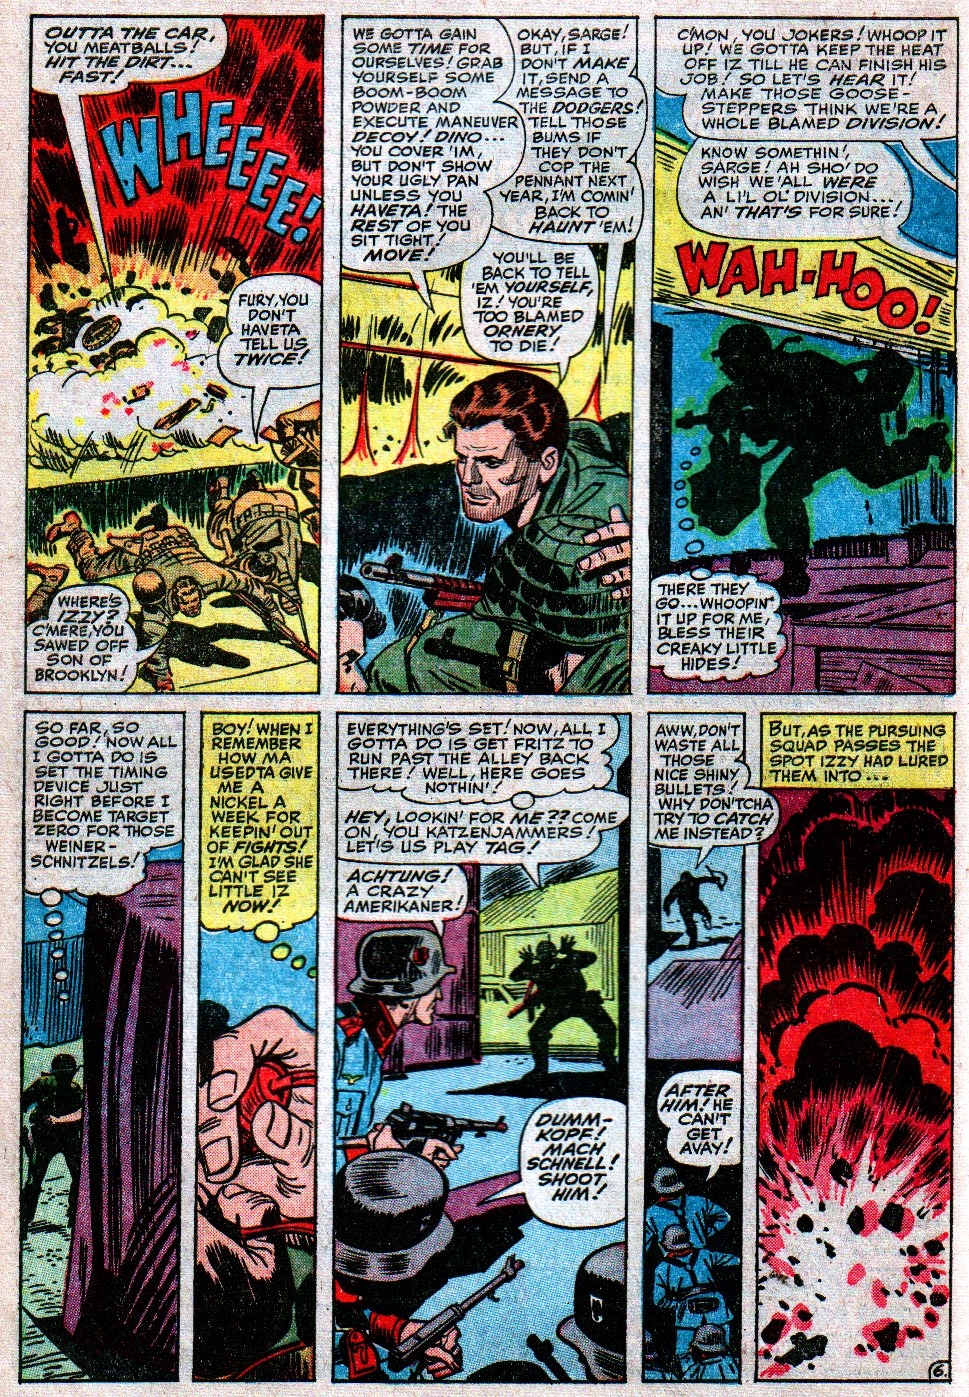 Read online Sgt. Fury comic -  Issue #12 - 10